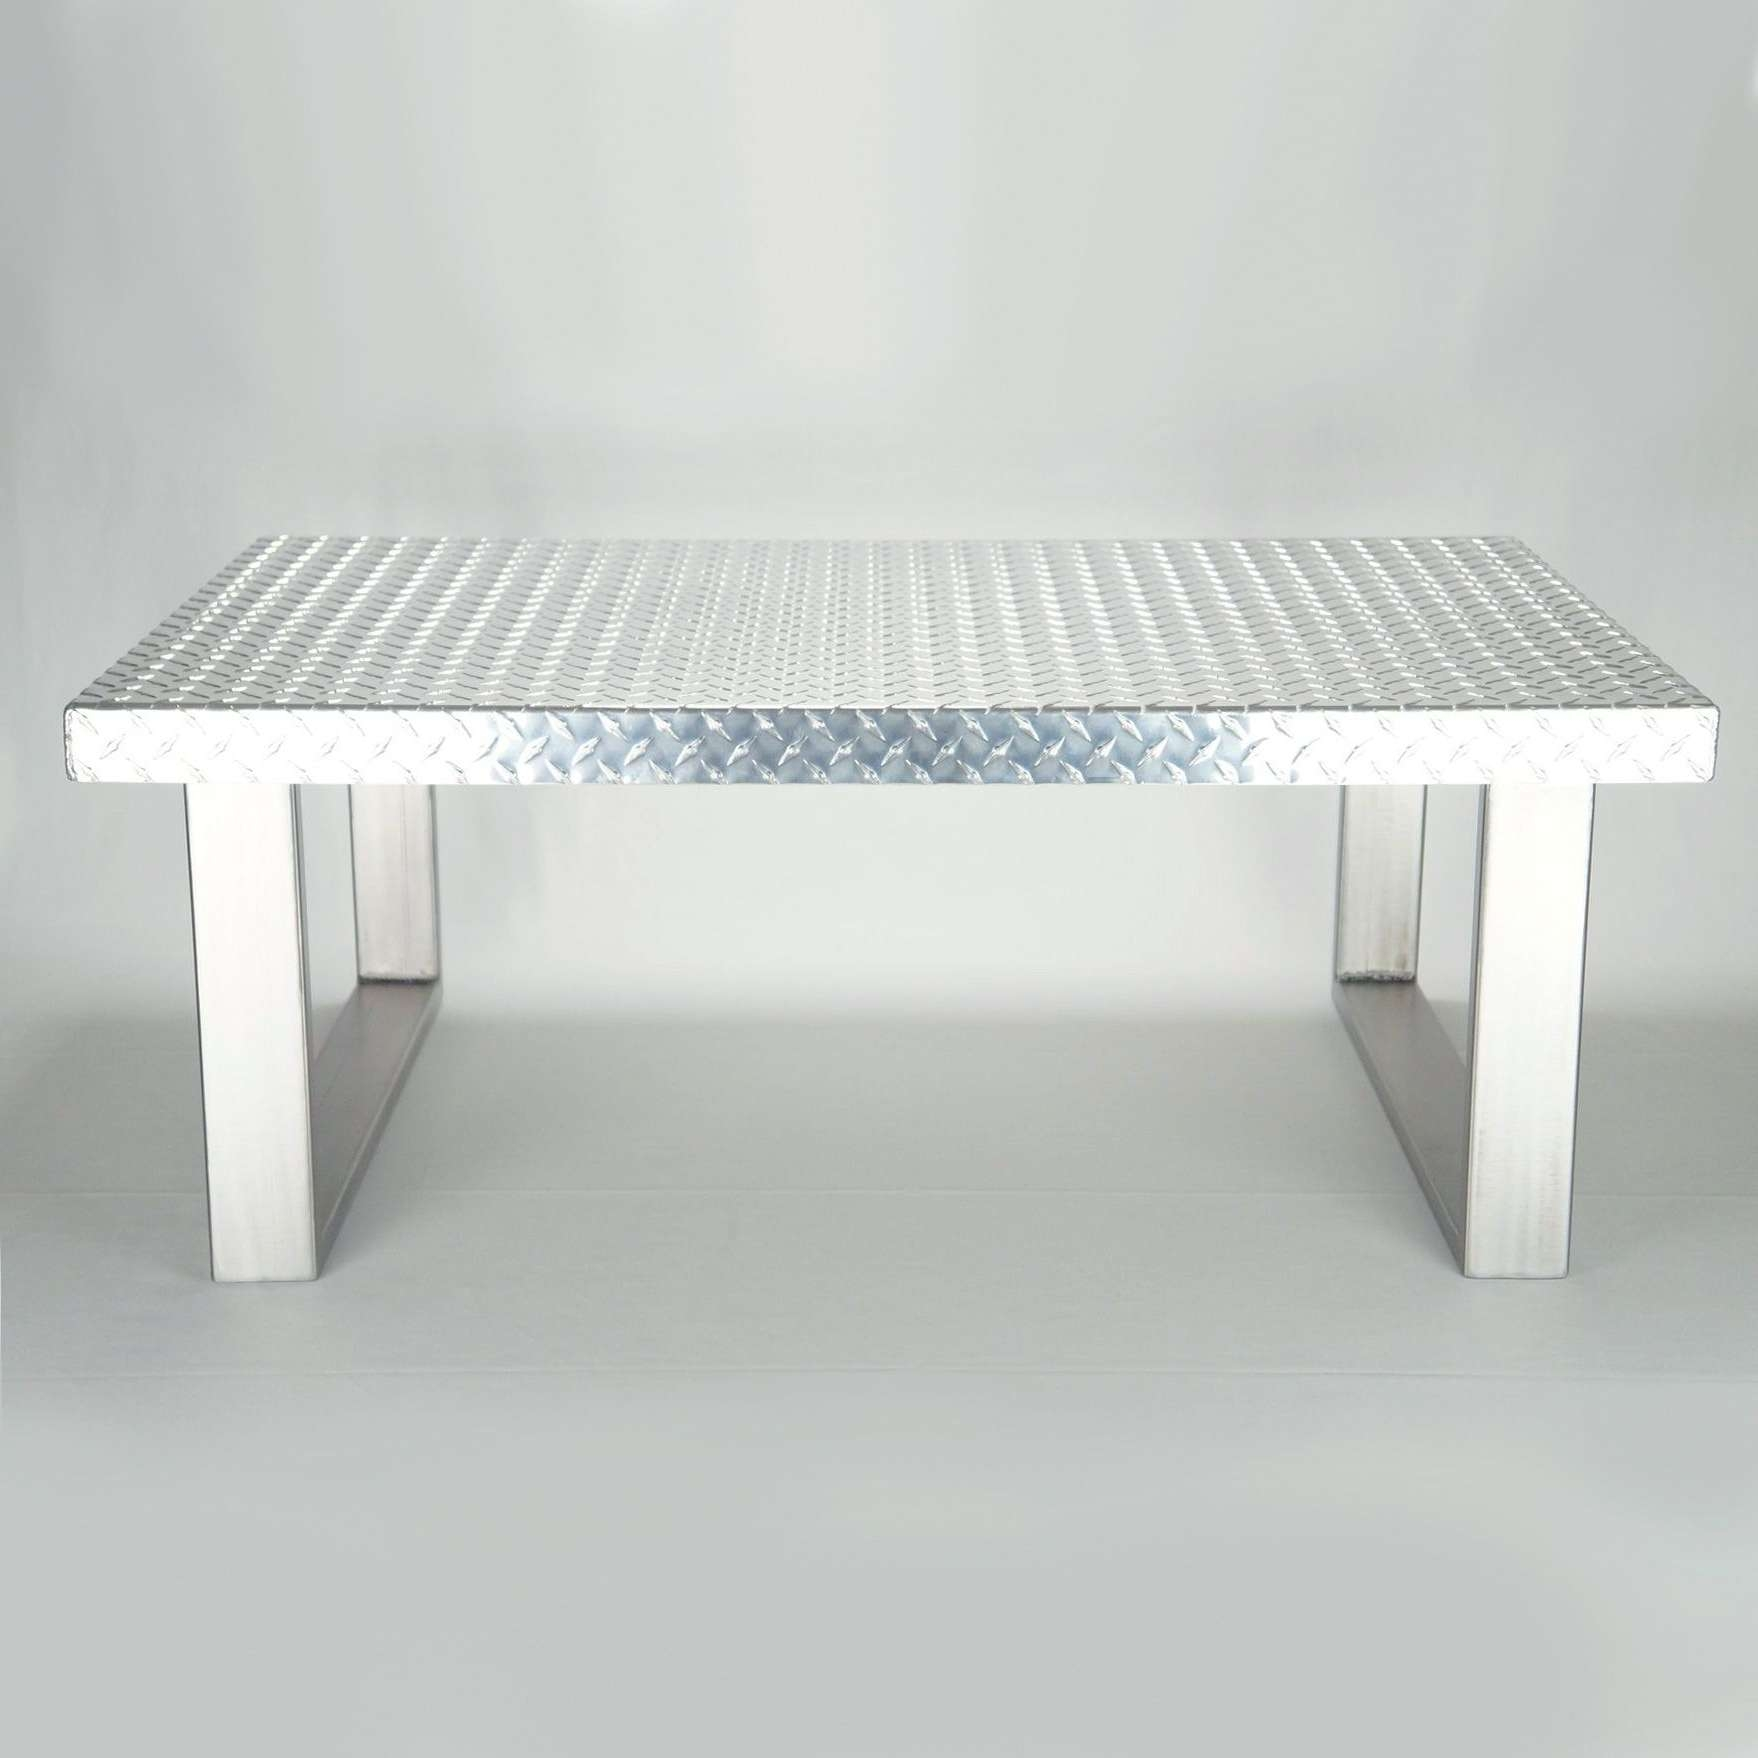 Best And Newest Metal Coffee Tables Inside Hand Made Industrial Diamond Plate Metal Coffee Tableck (View 5 of 20)